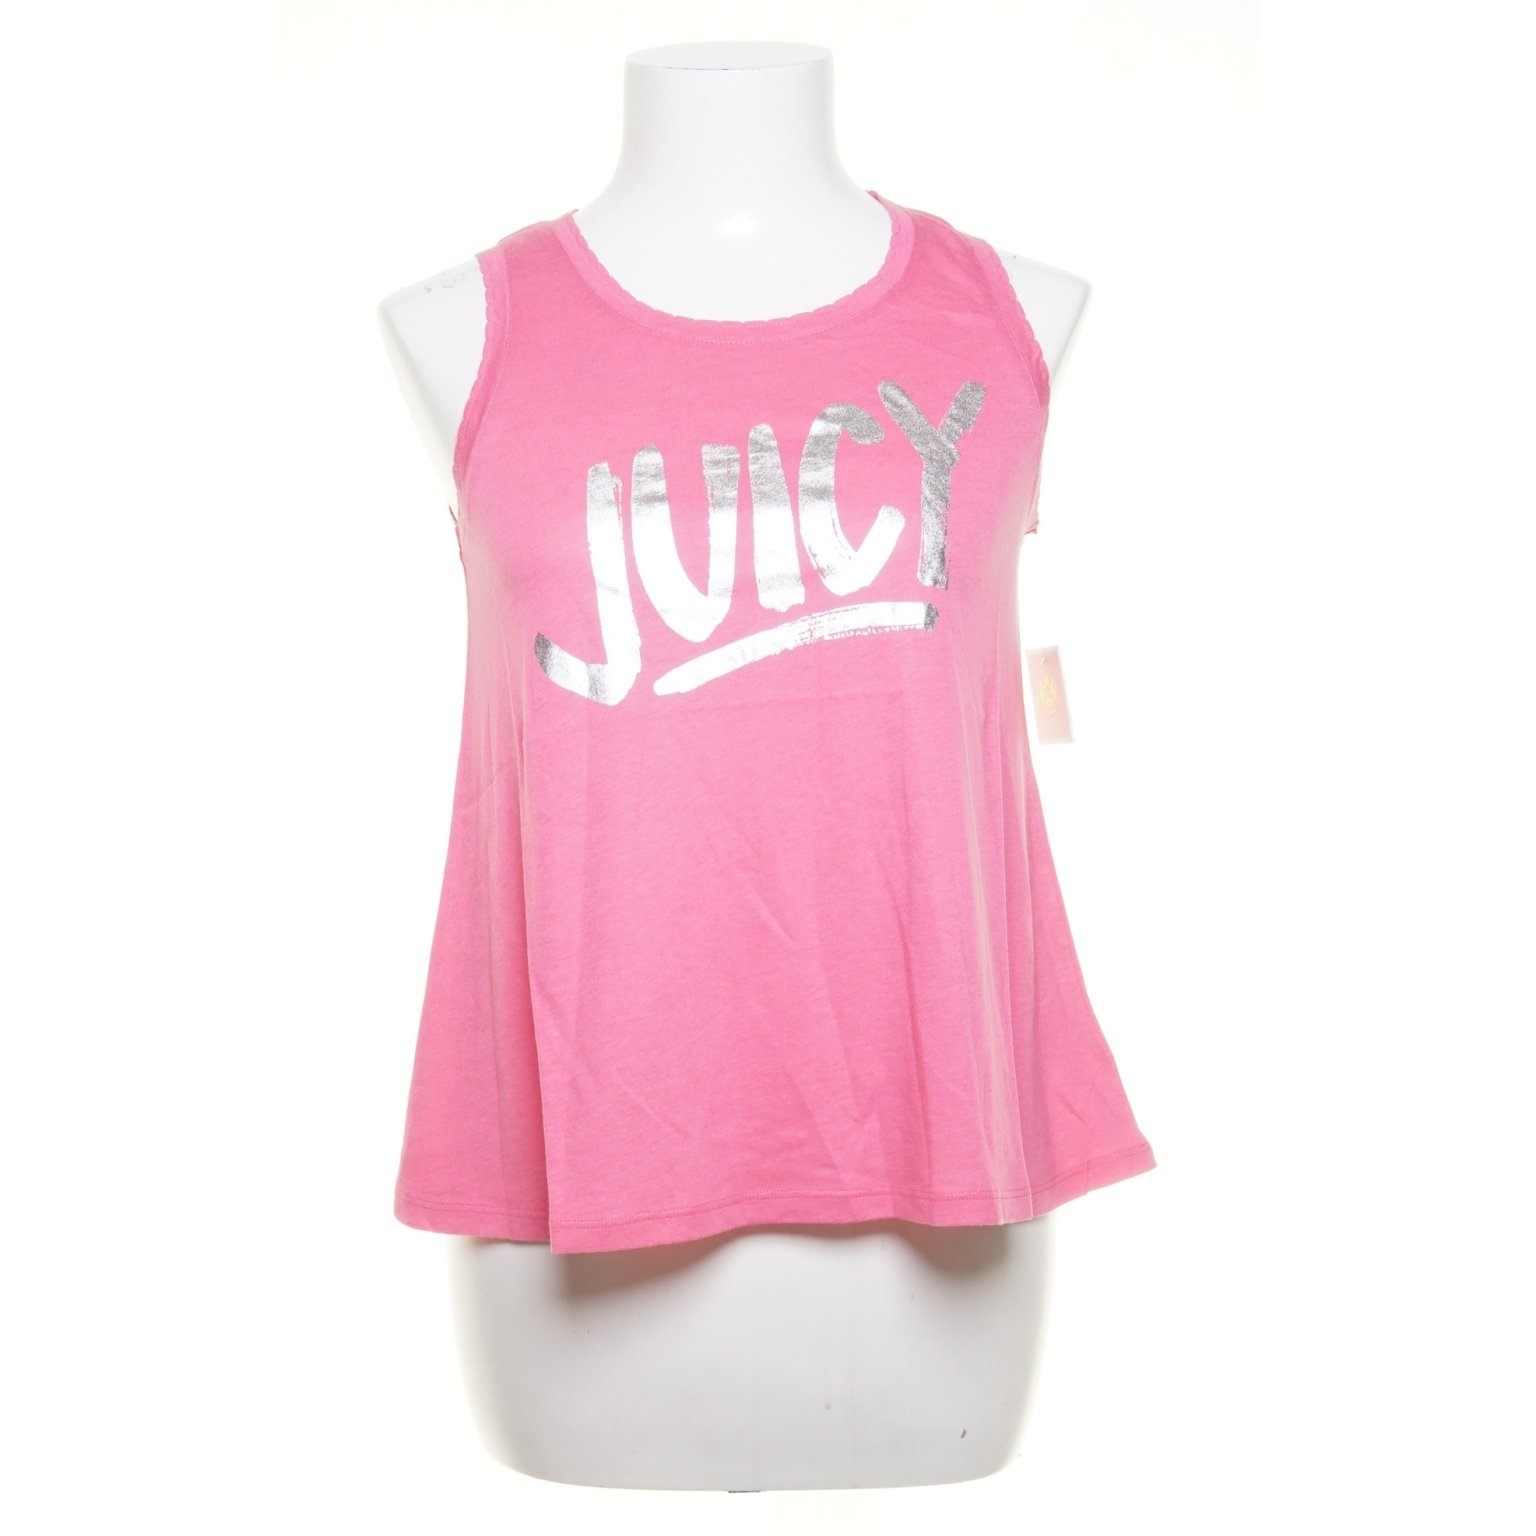 Juicy Couture, Linne, Strl: 122, Highlighter Juicy Tank, Rosa, Bomull/Modal